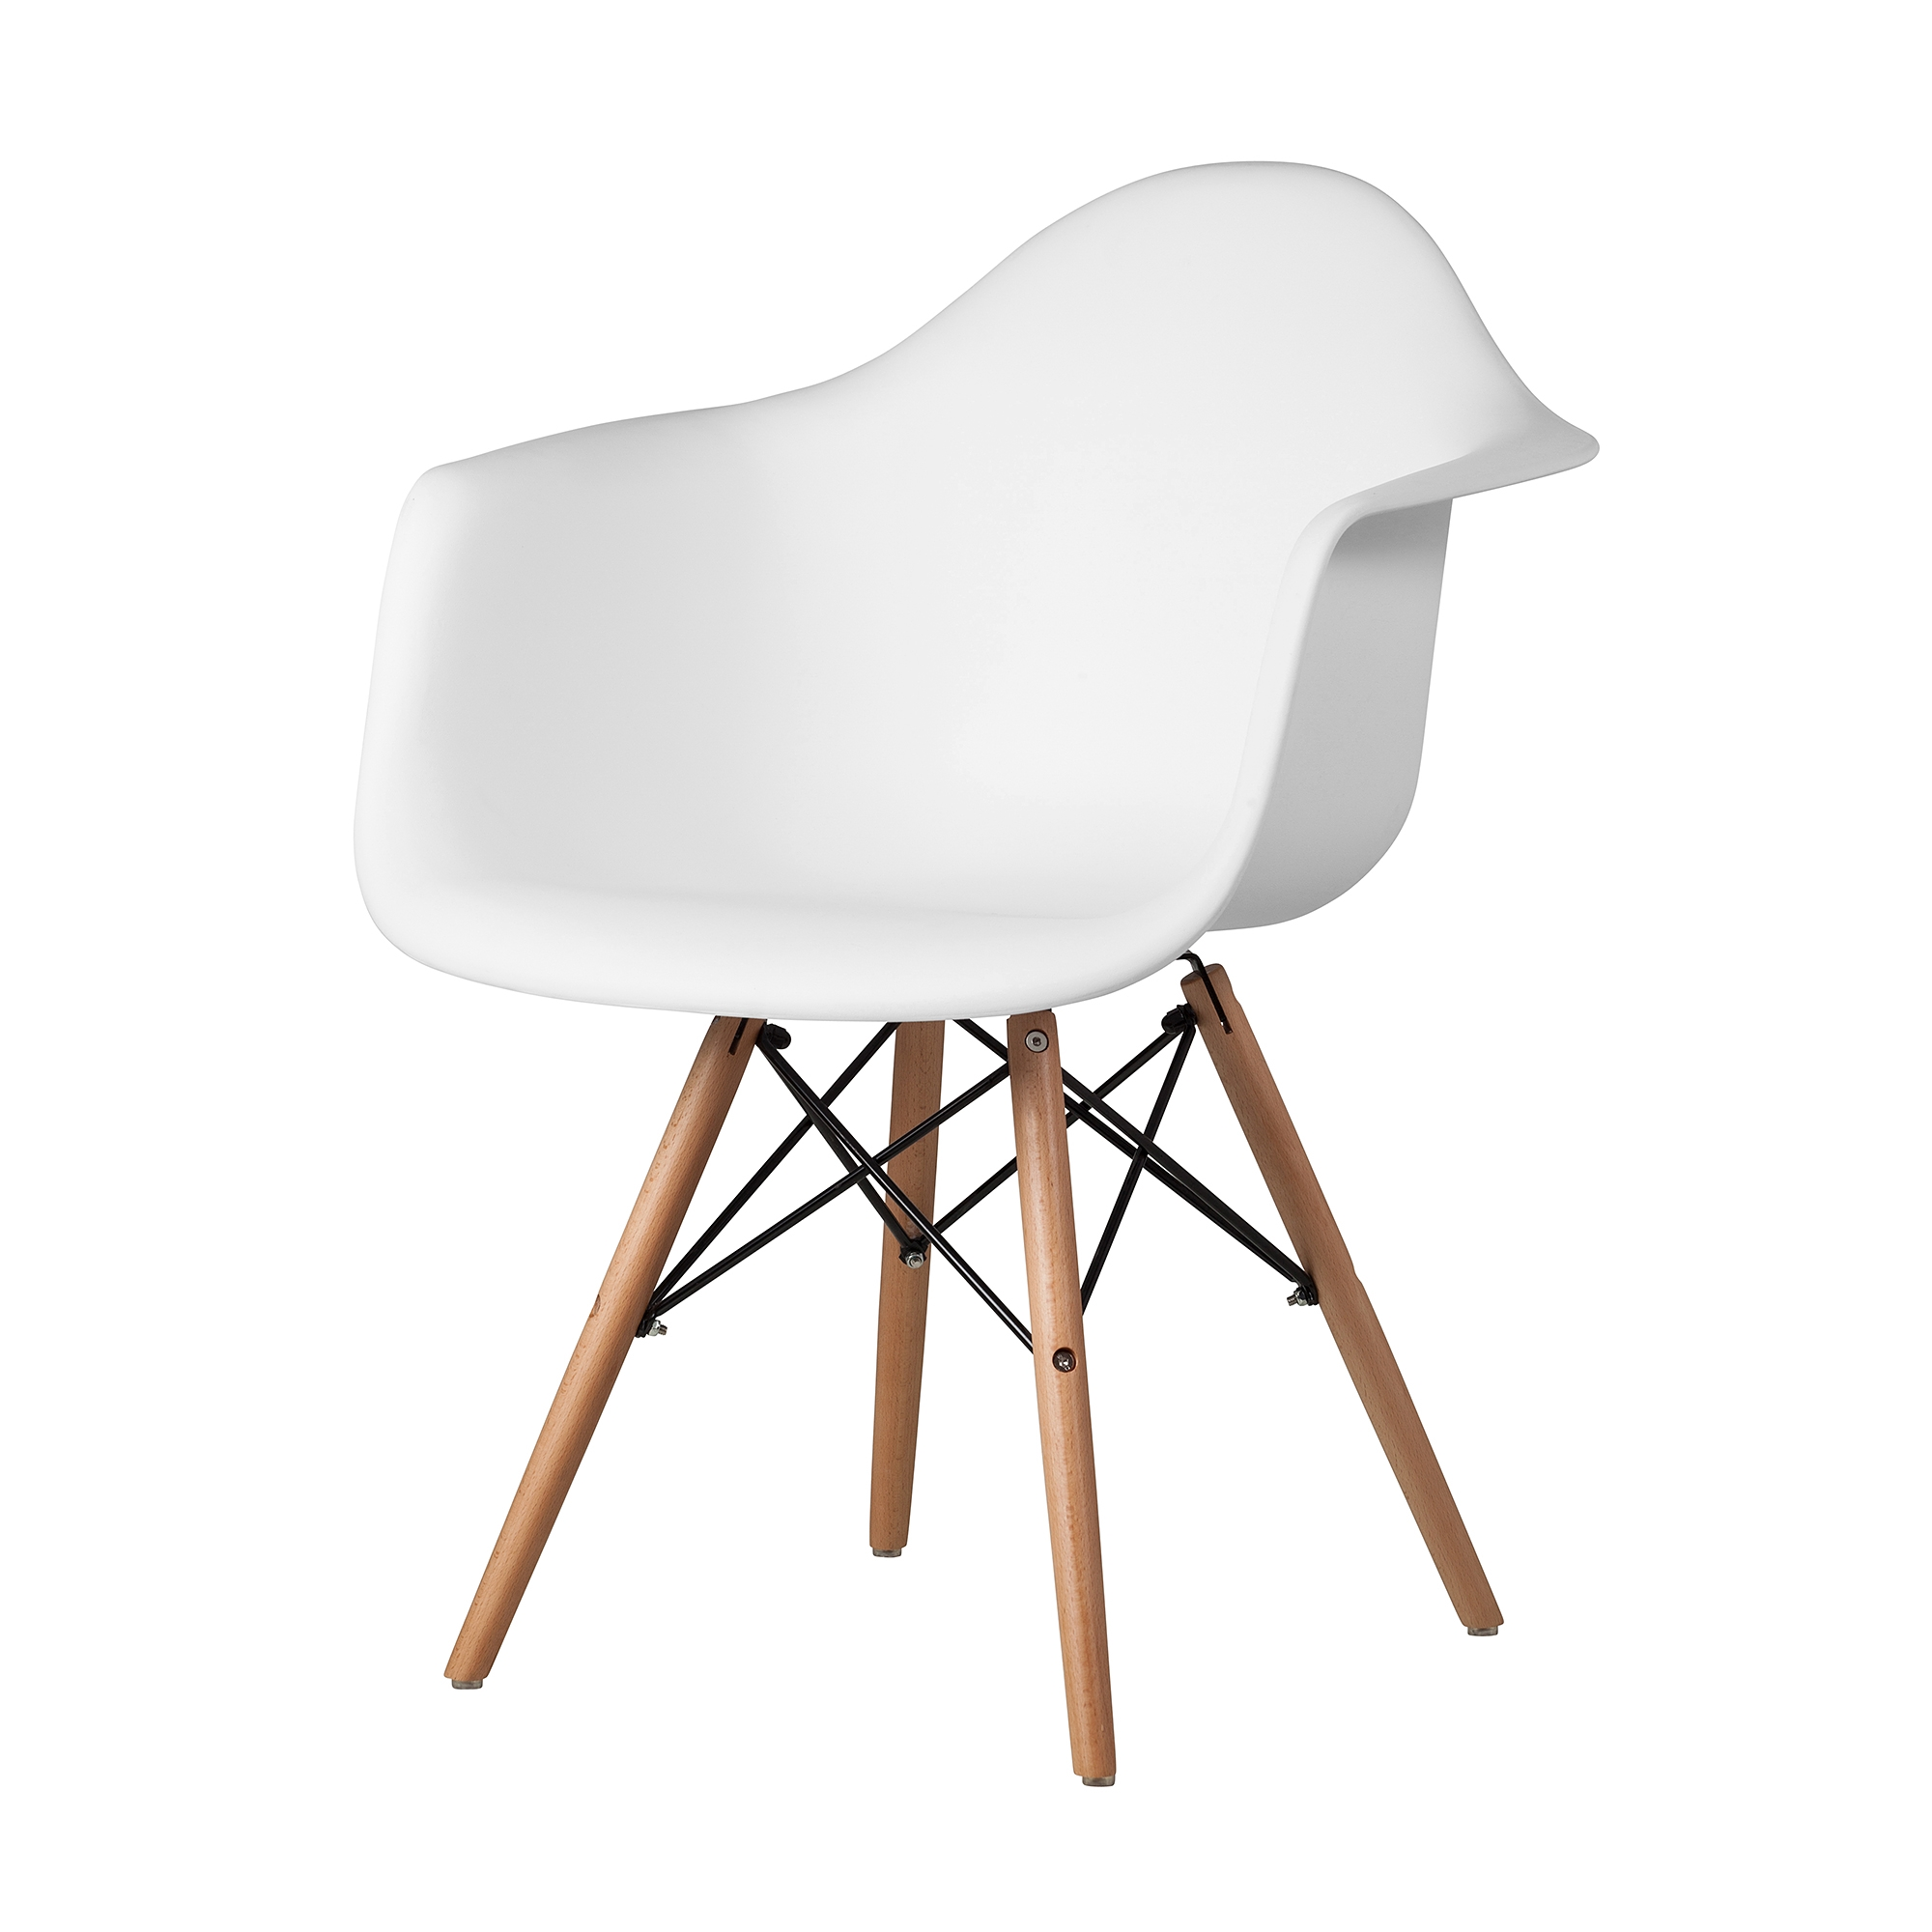 Admirable Molded Mid Century Arm Chair White Abs Plastic Ocoug Best Dining Table And Chair Ideas Images Ocougorg